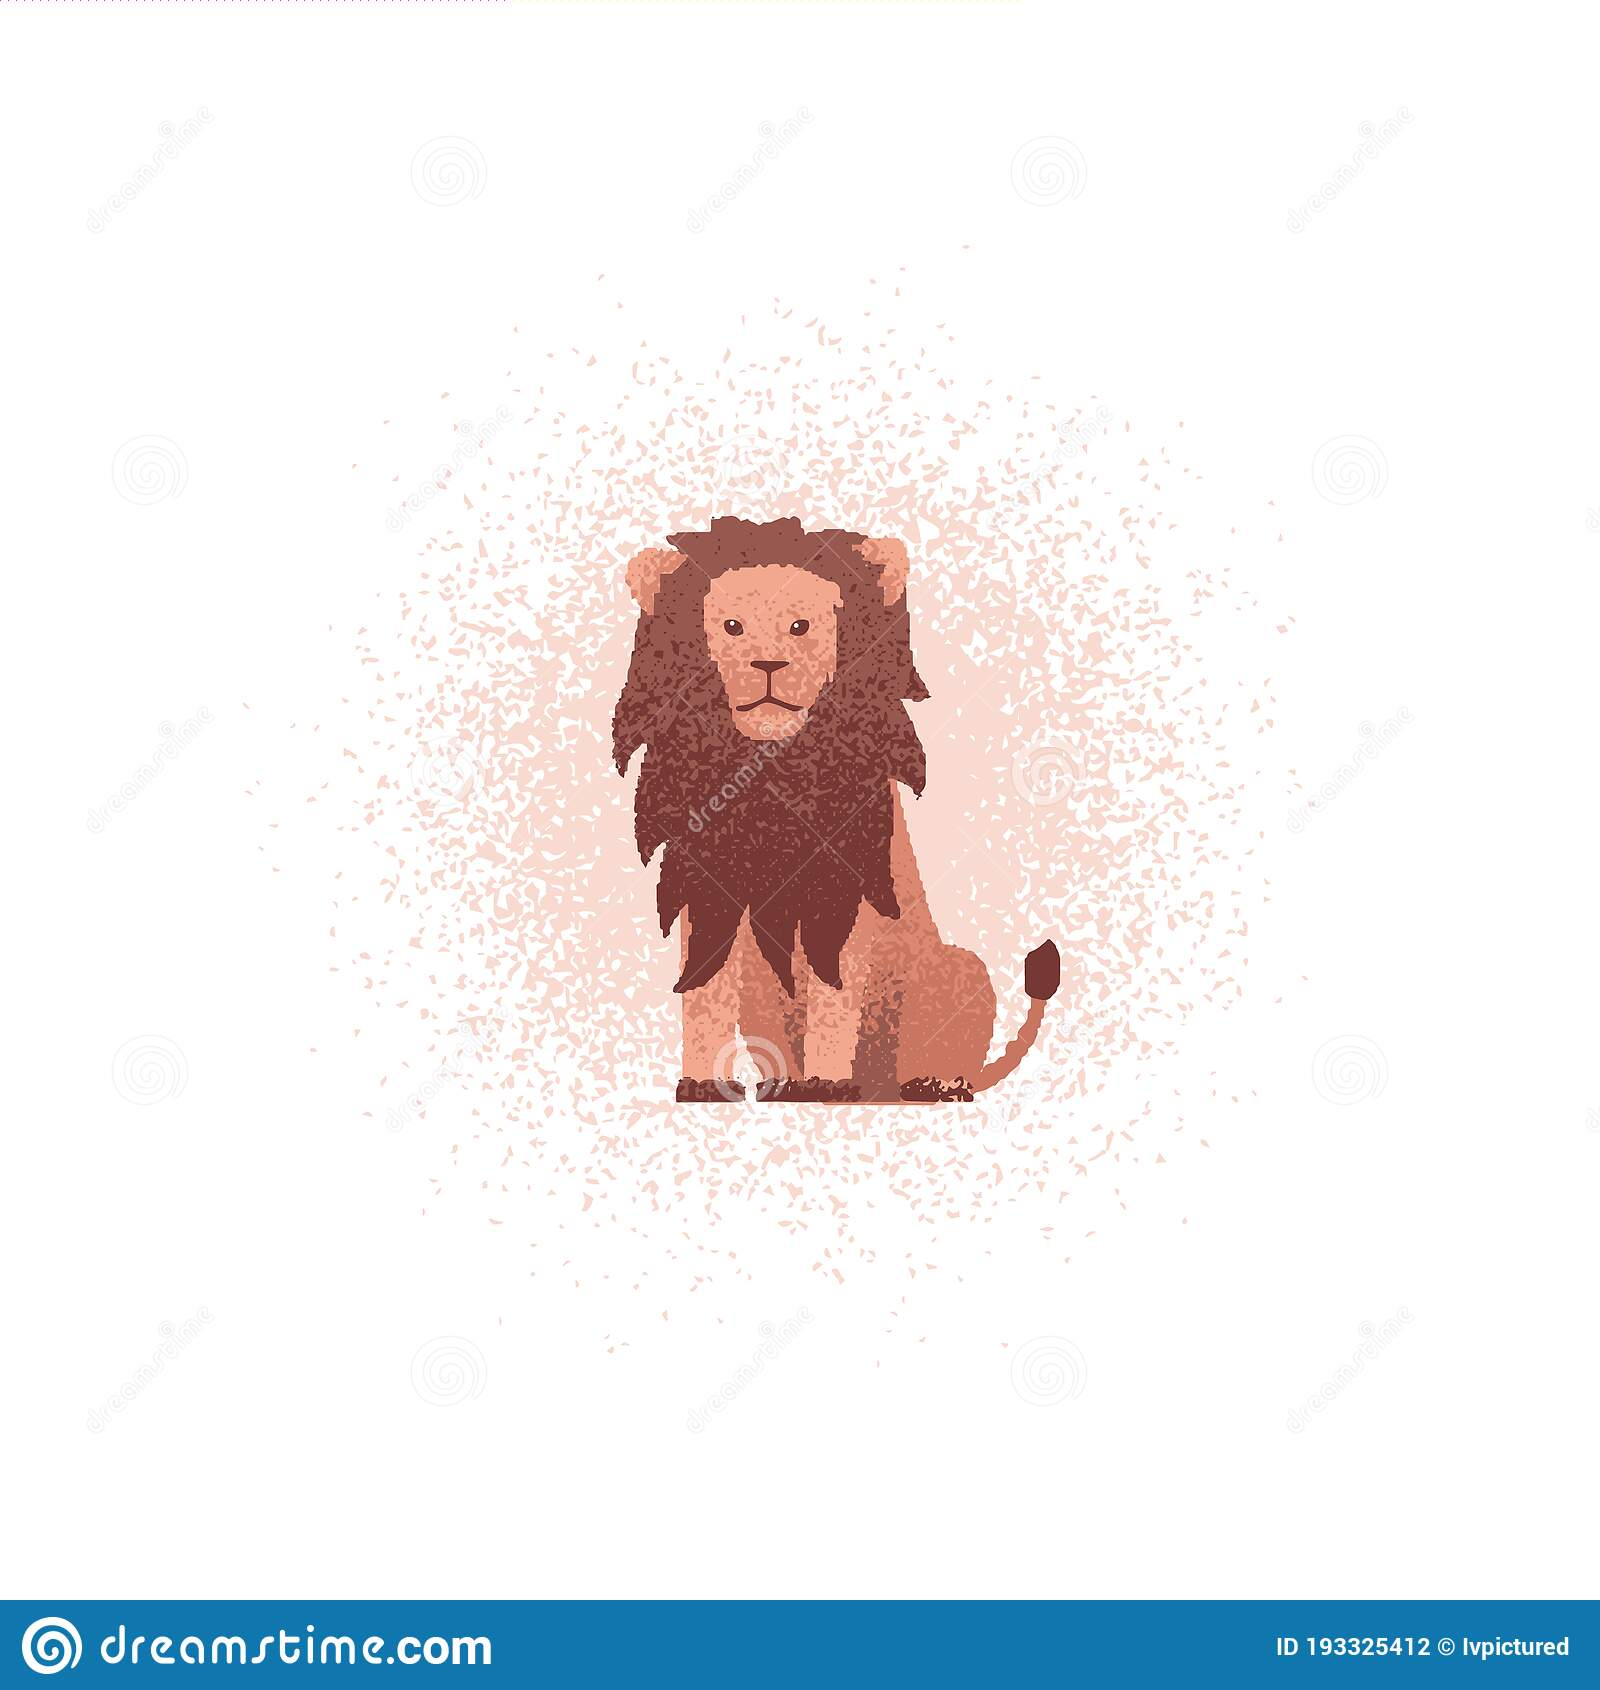 Profile Sitting Lion Stock Illustrations 33 Profile Sitting Lion Stock Illustrations Vectors Clipart Dreamstime Download this free vector about lion sitting in grassland, and discover more than 10 million professional graphic resources on freepik. dreamstime com